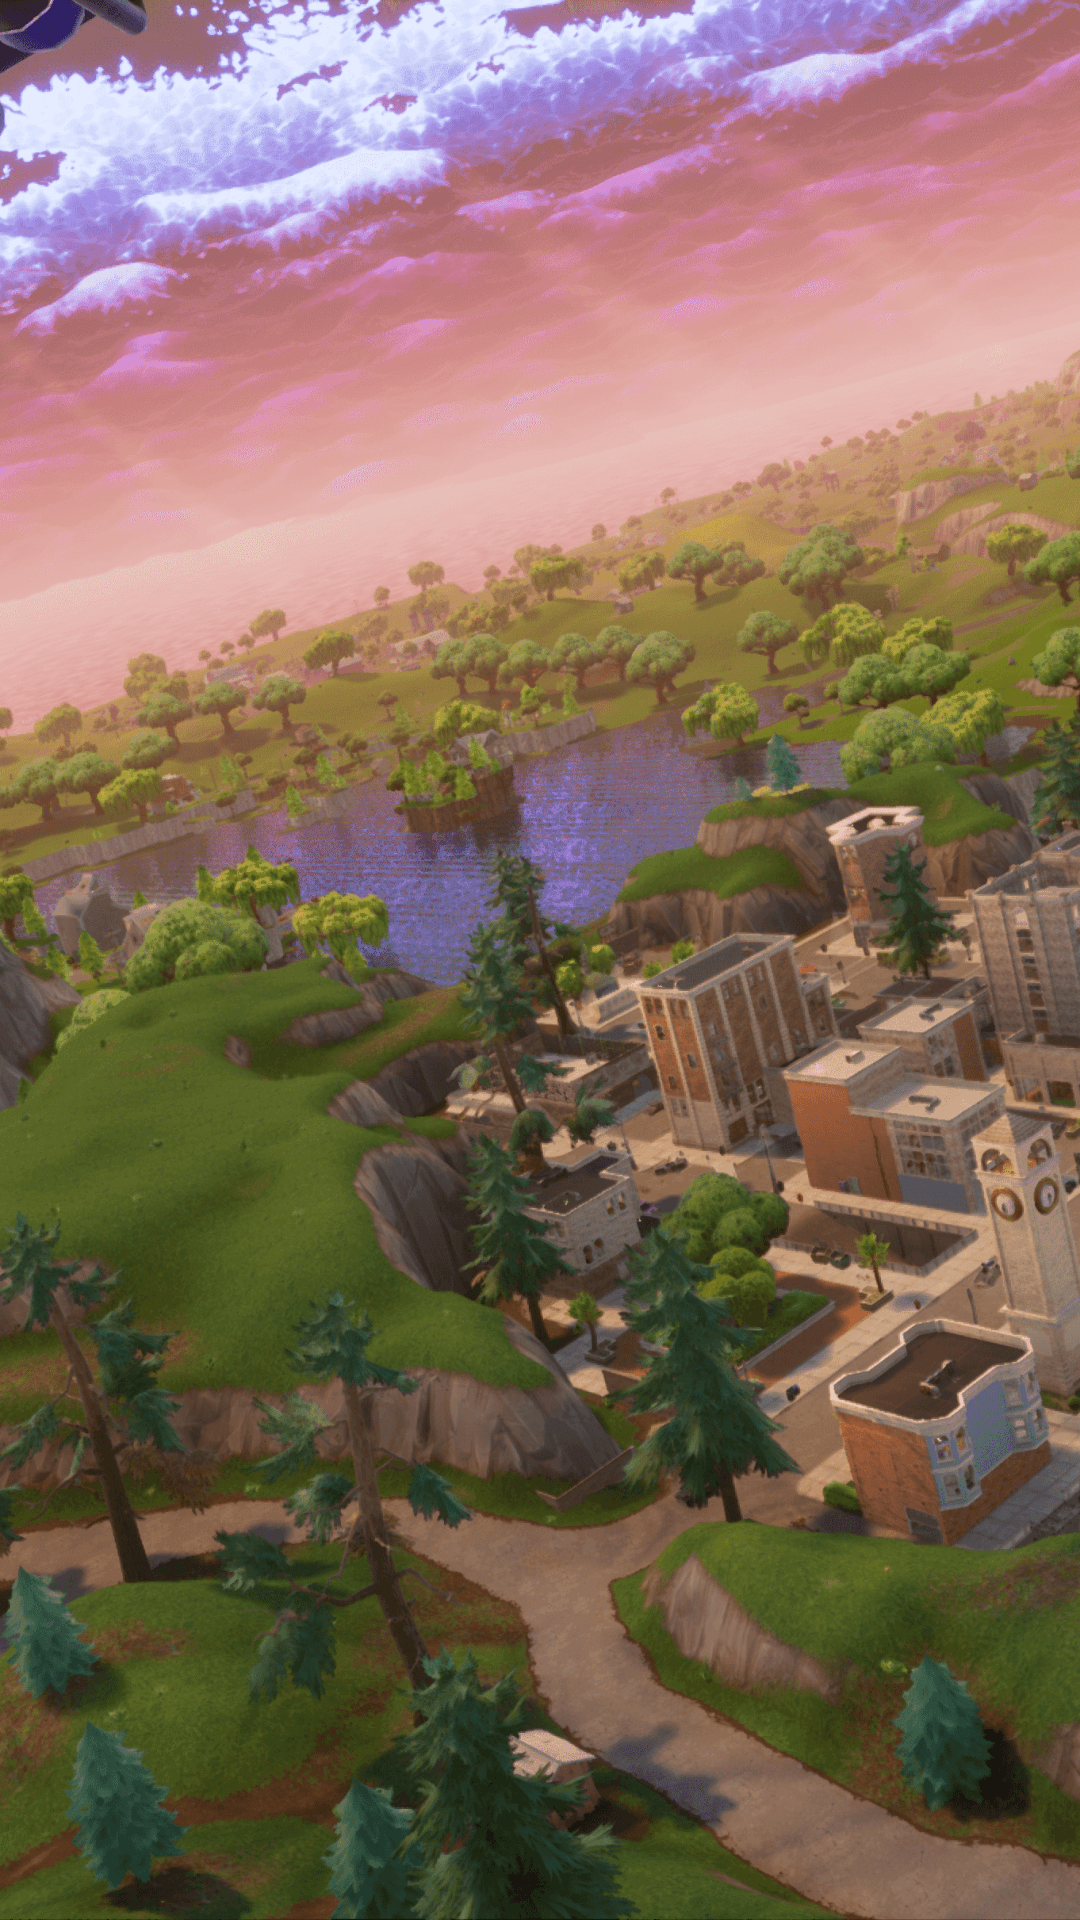 Tilted towers | cool pics in 2019 | Epic games, Videogames, Wallpaper